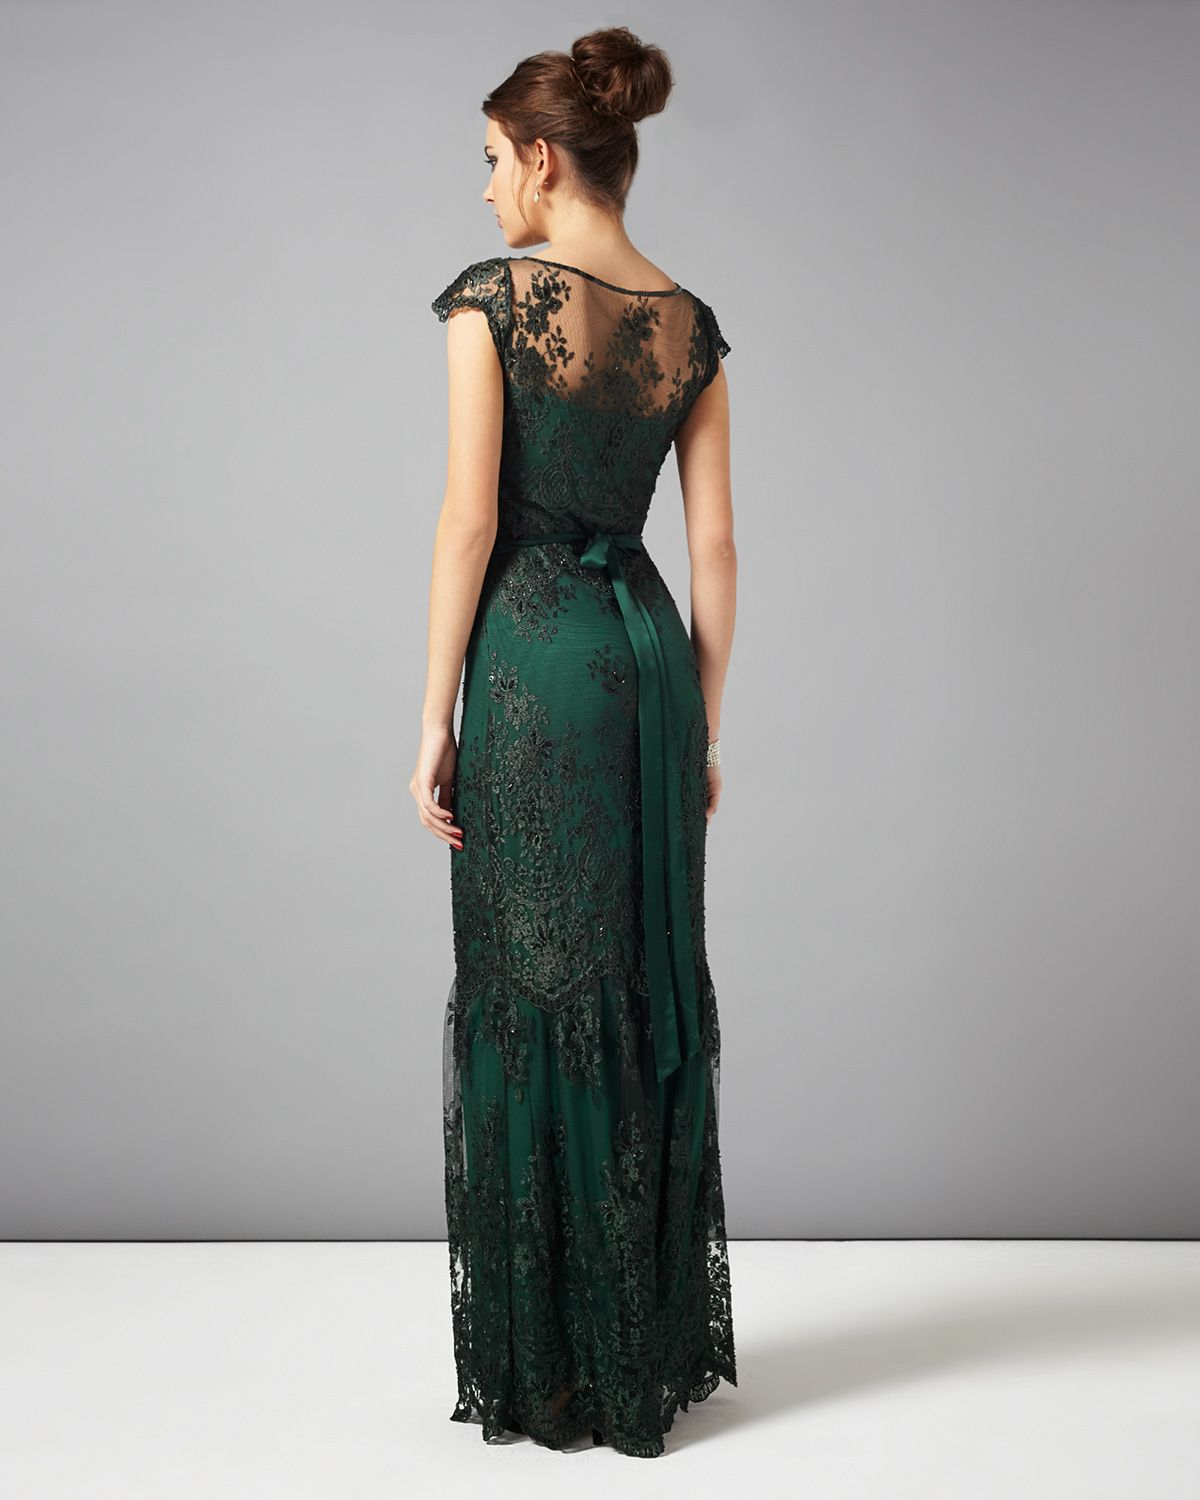 Dresses | Green Cindy Lace Full Length Dress | Phase Eight | how do ...